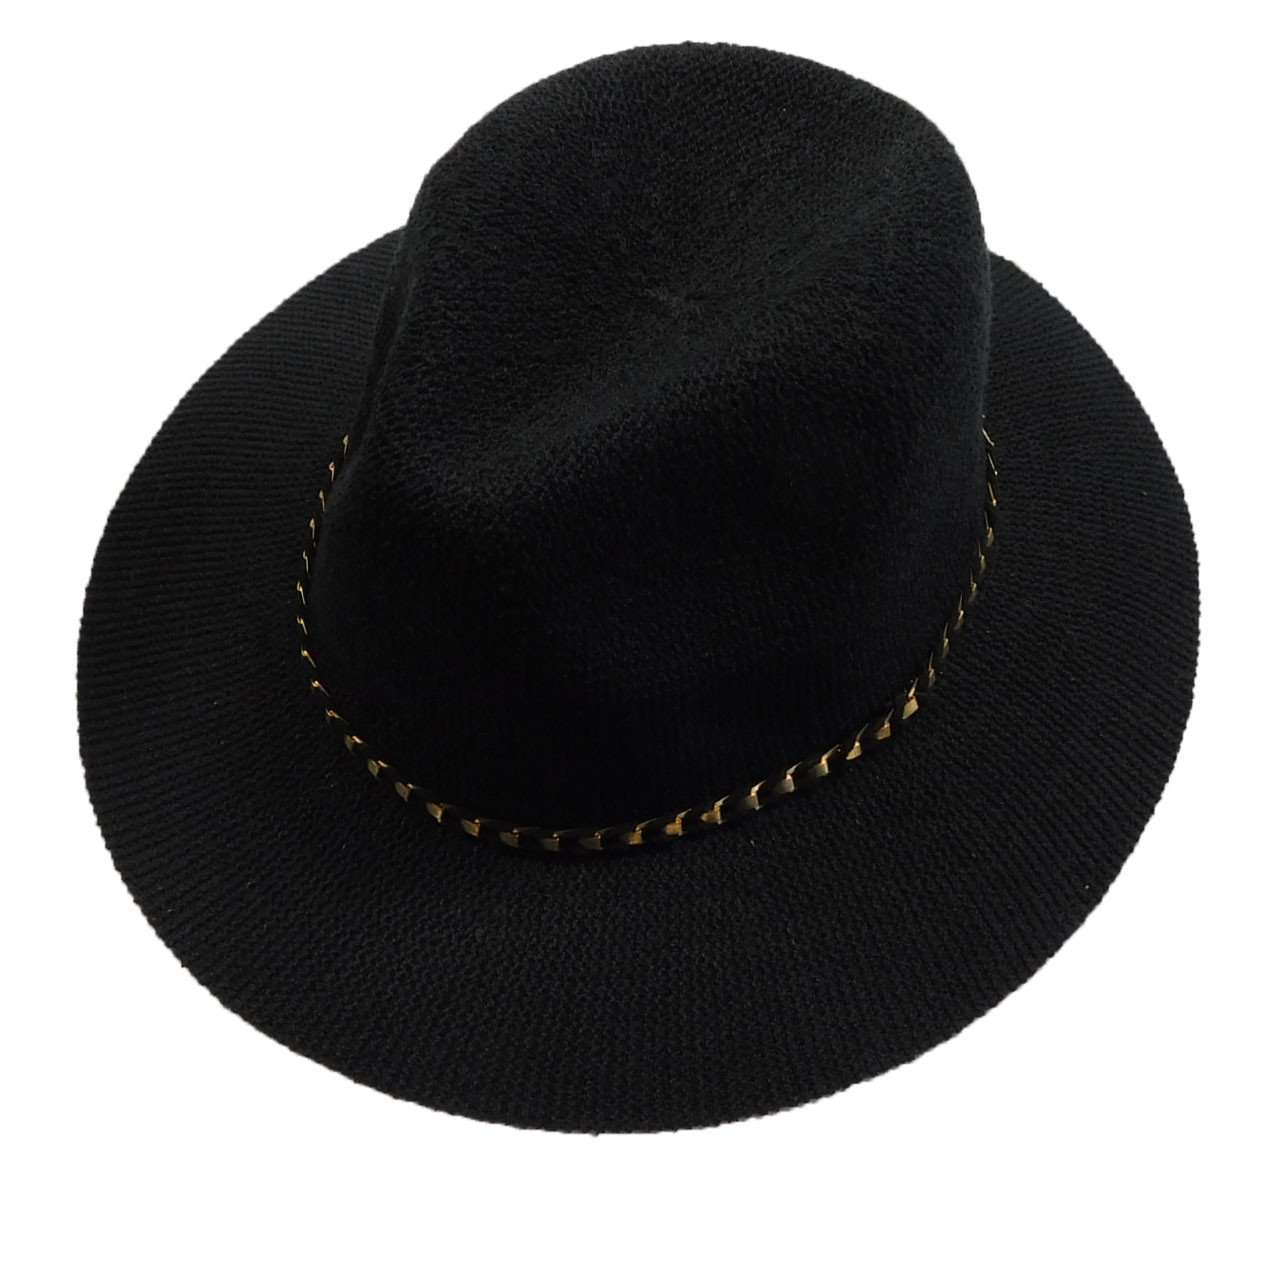 Knitted Panama Hat with Gold Band - Black - SetarTrading Hats